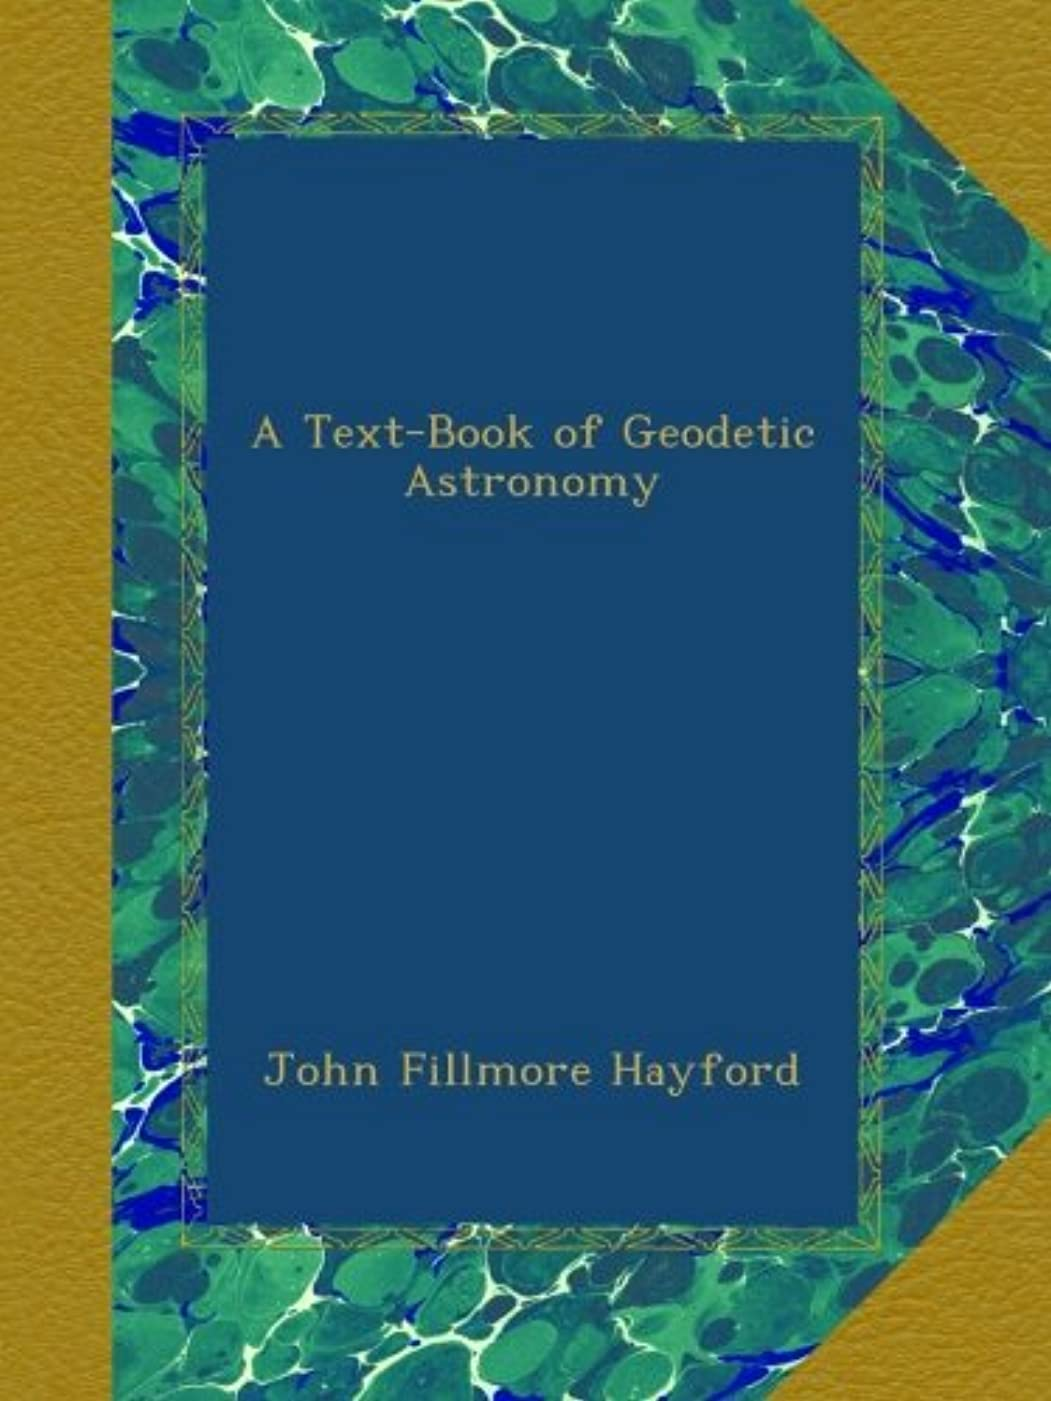 A Text-Book of Geodetic Astronomy